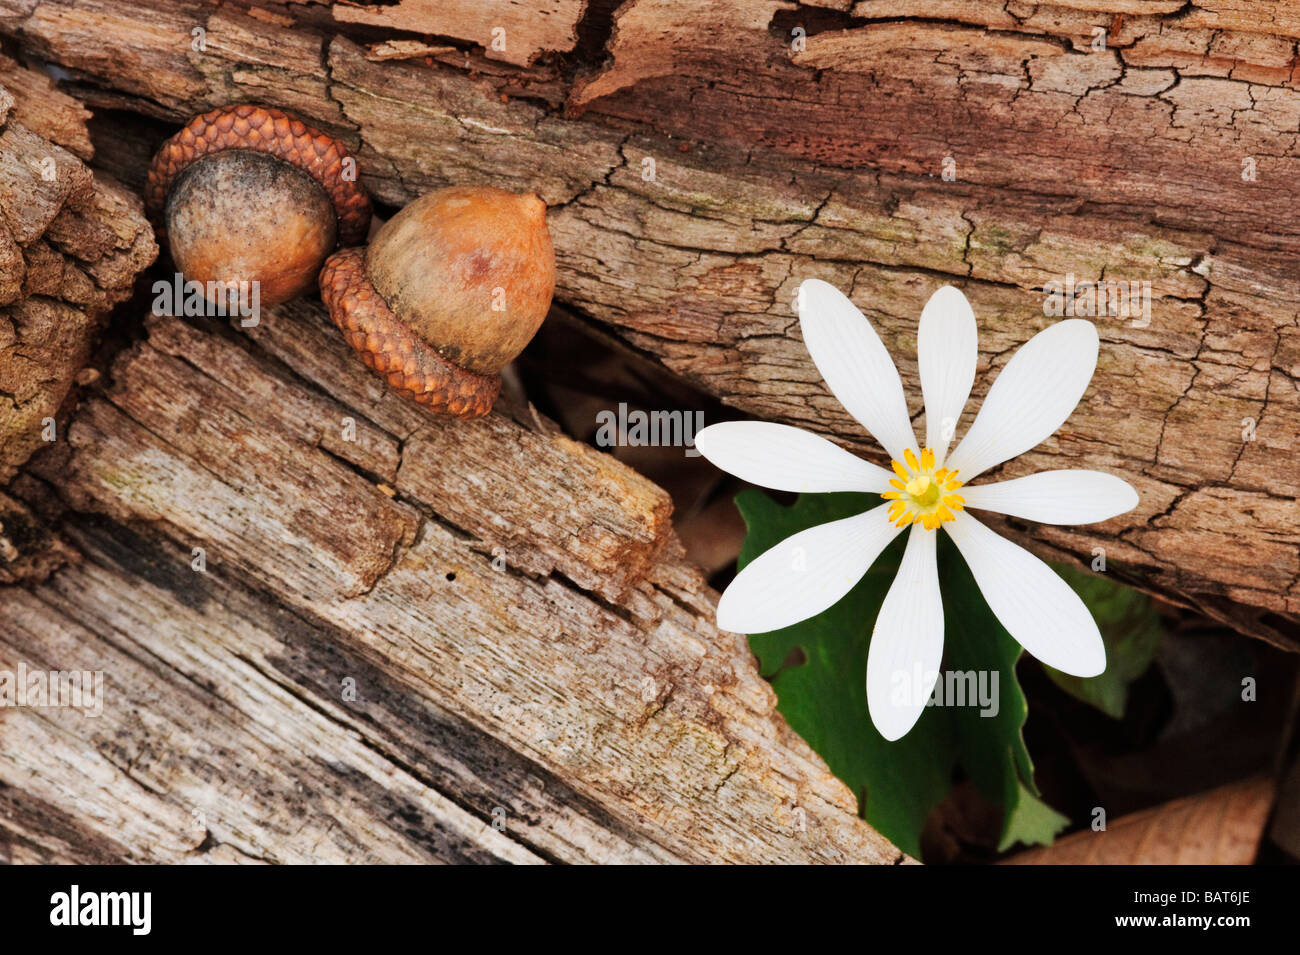 Sanguinaria canadensis, Bloodroot, and acorns form an early spring intimate landscape - Stock Image